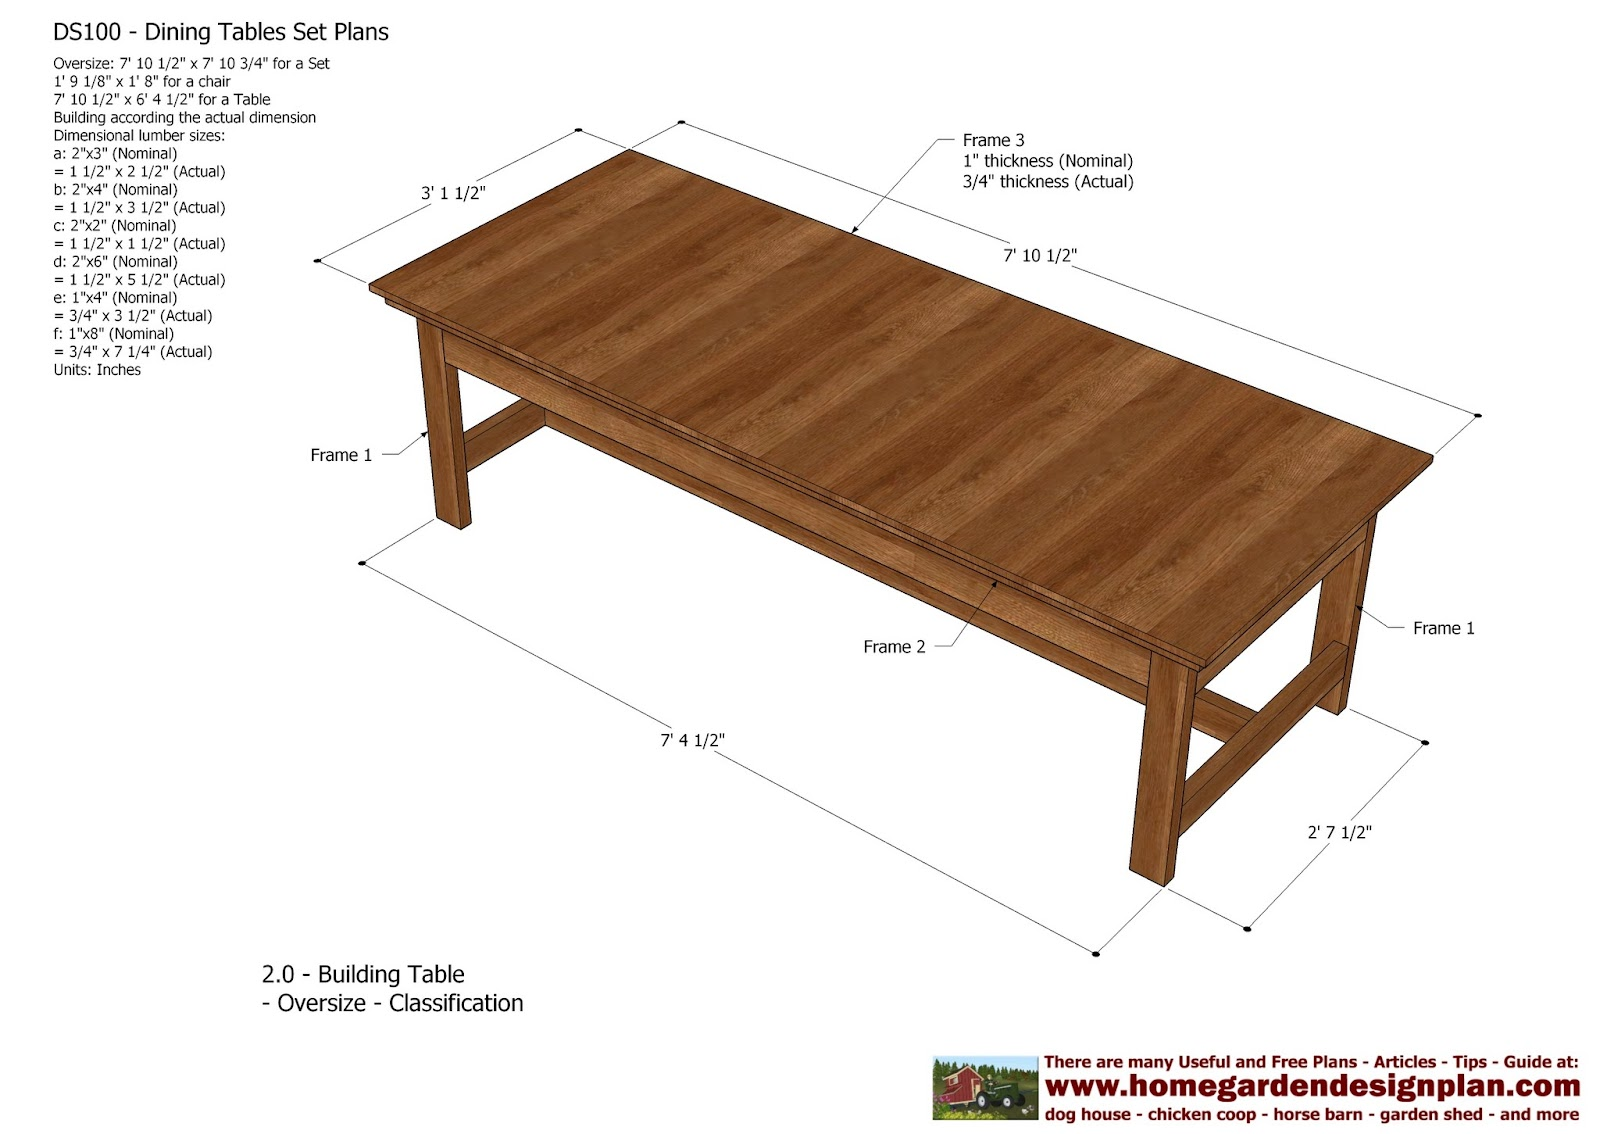 Home Garden Plans DS100 Dining Table Set Plans Woodworking Plans Outdo